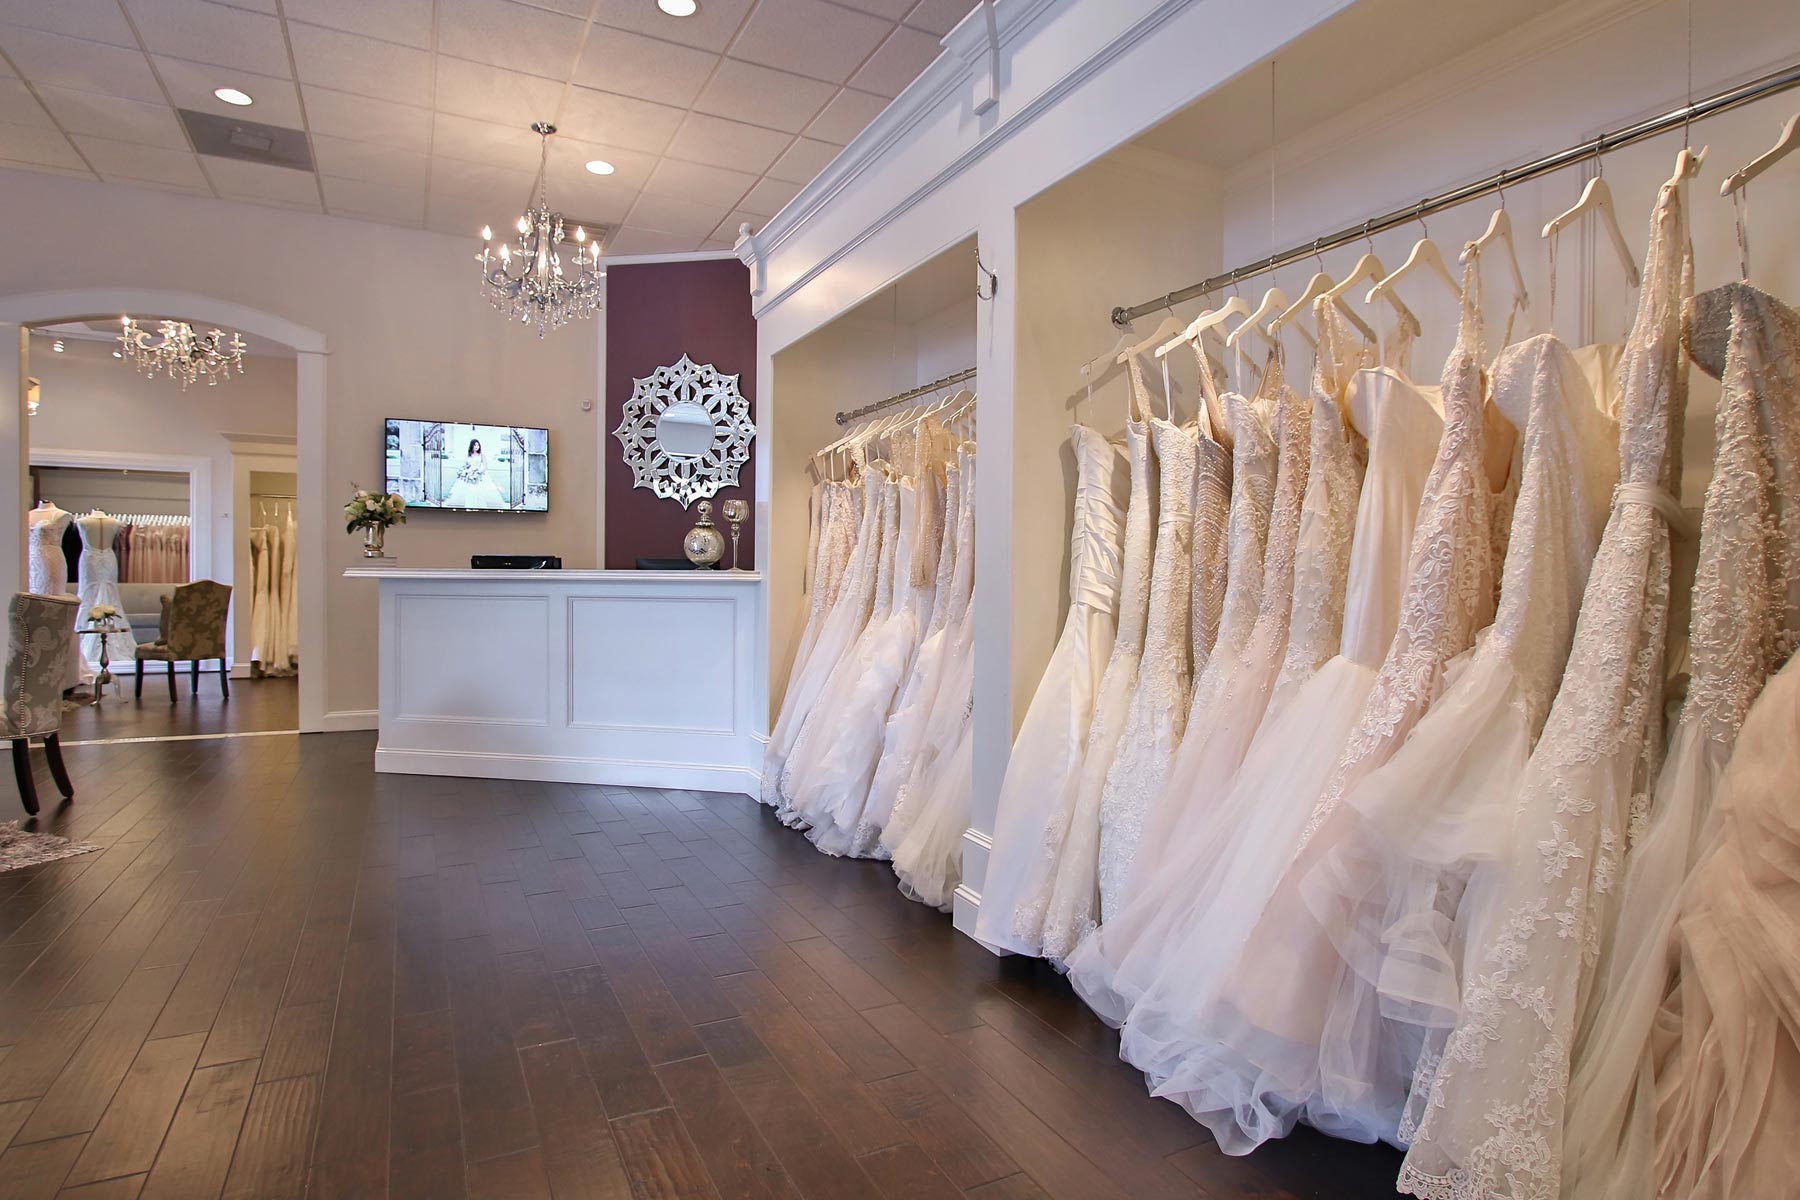 Our Store | Bridal Shop Houston TX | Whittington Bridal